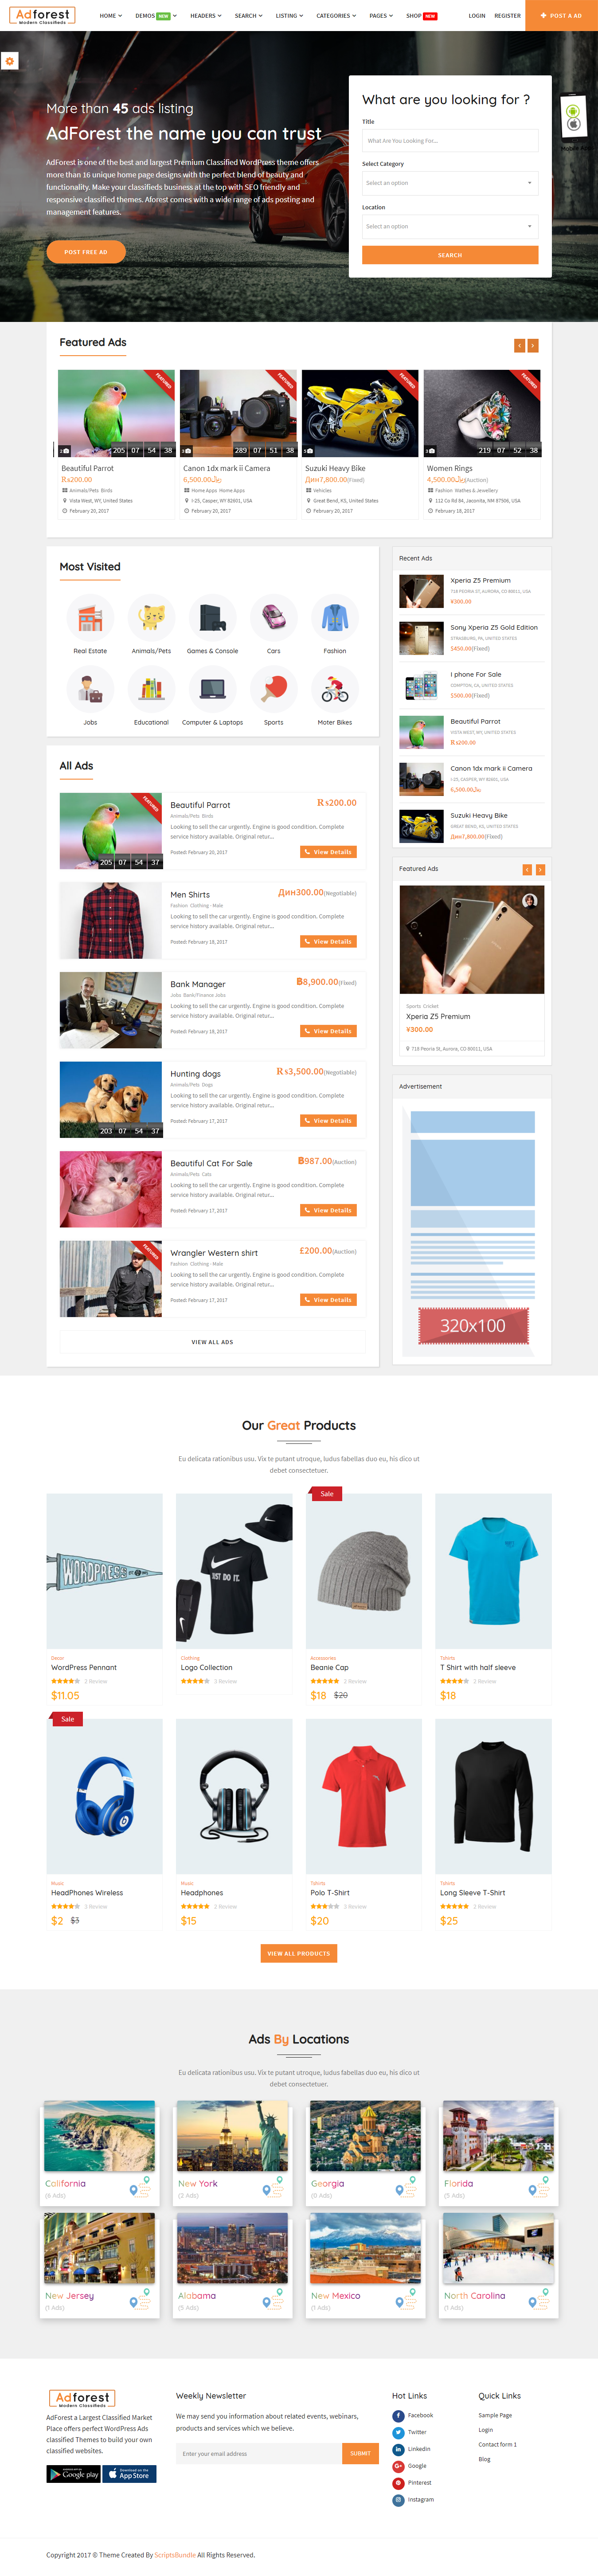 AdForest - Best Premium Classified WordPress Theme